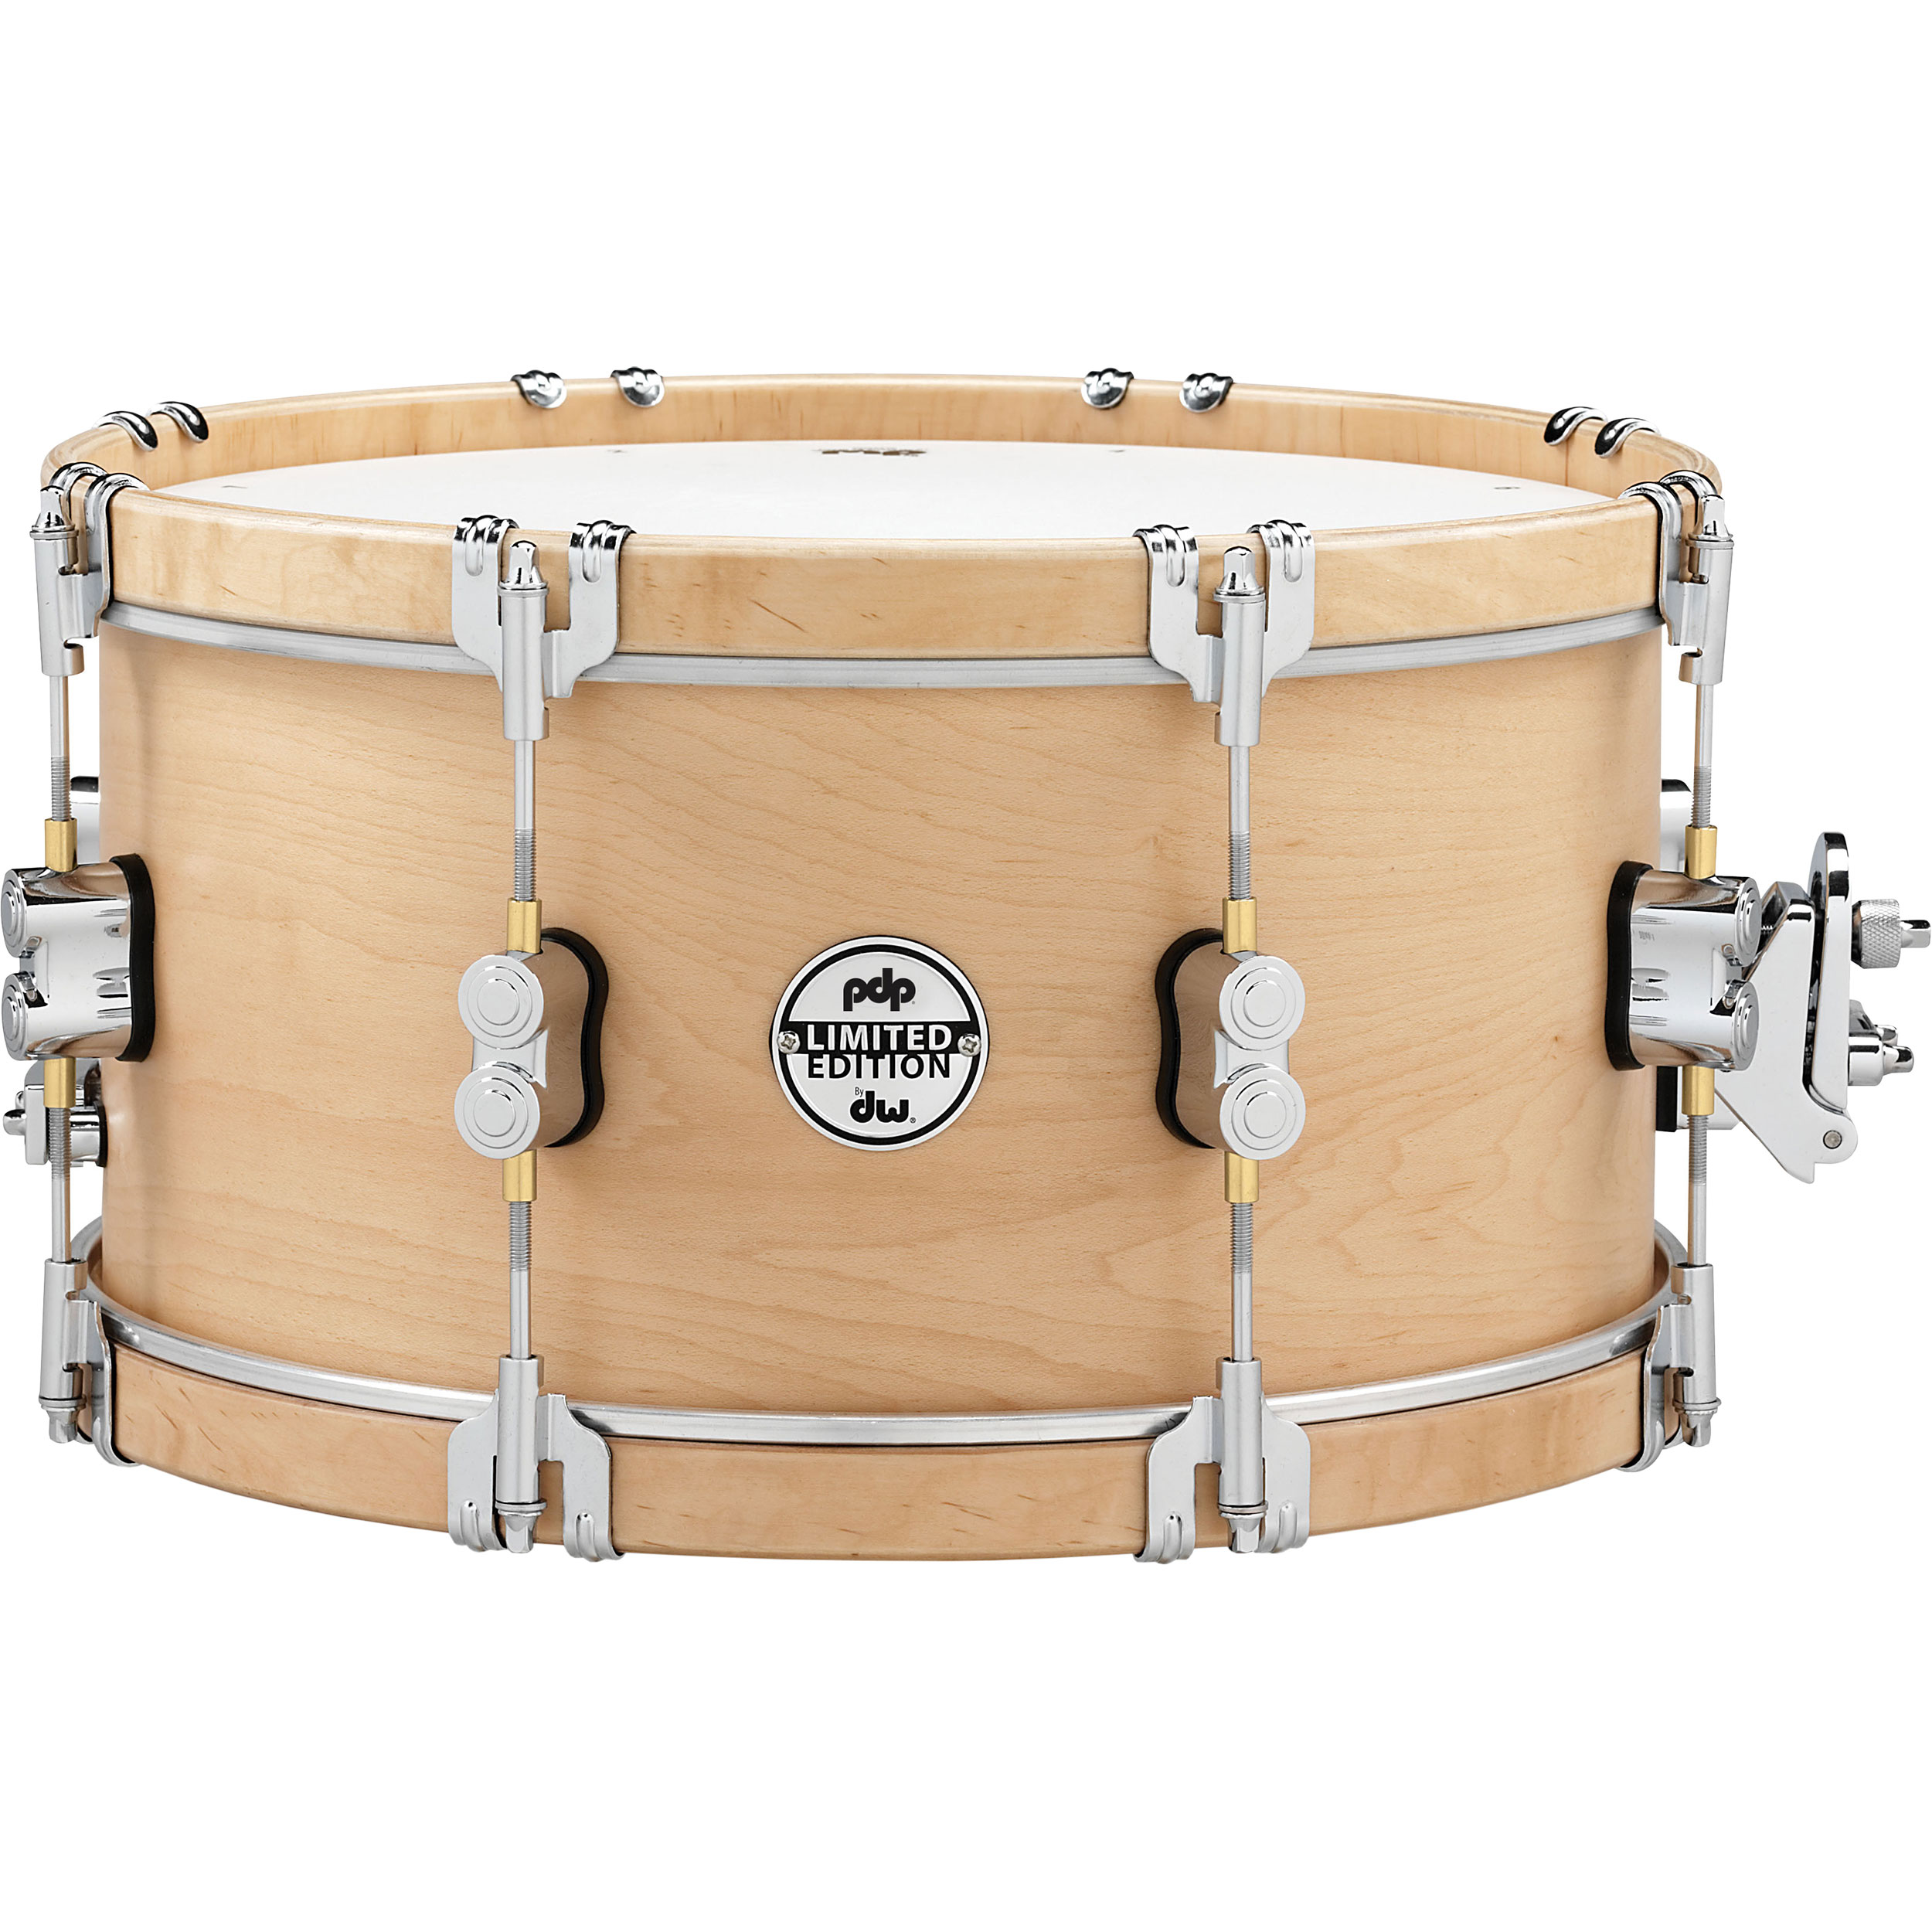 "PDP 7"" x 14"" Limited Edition Classic Wood Hoop Snare Drum"